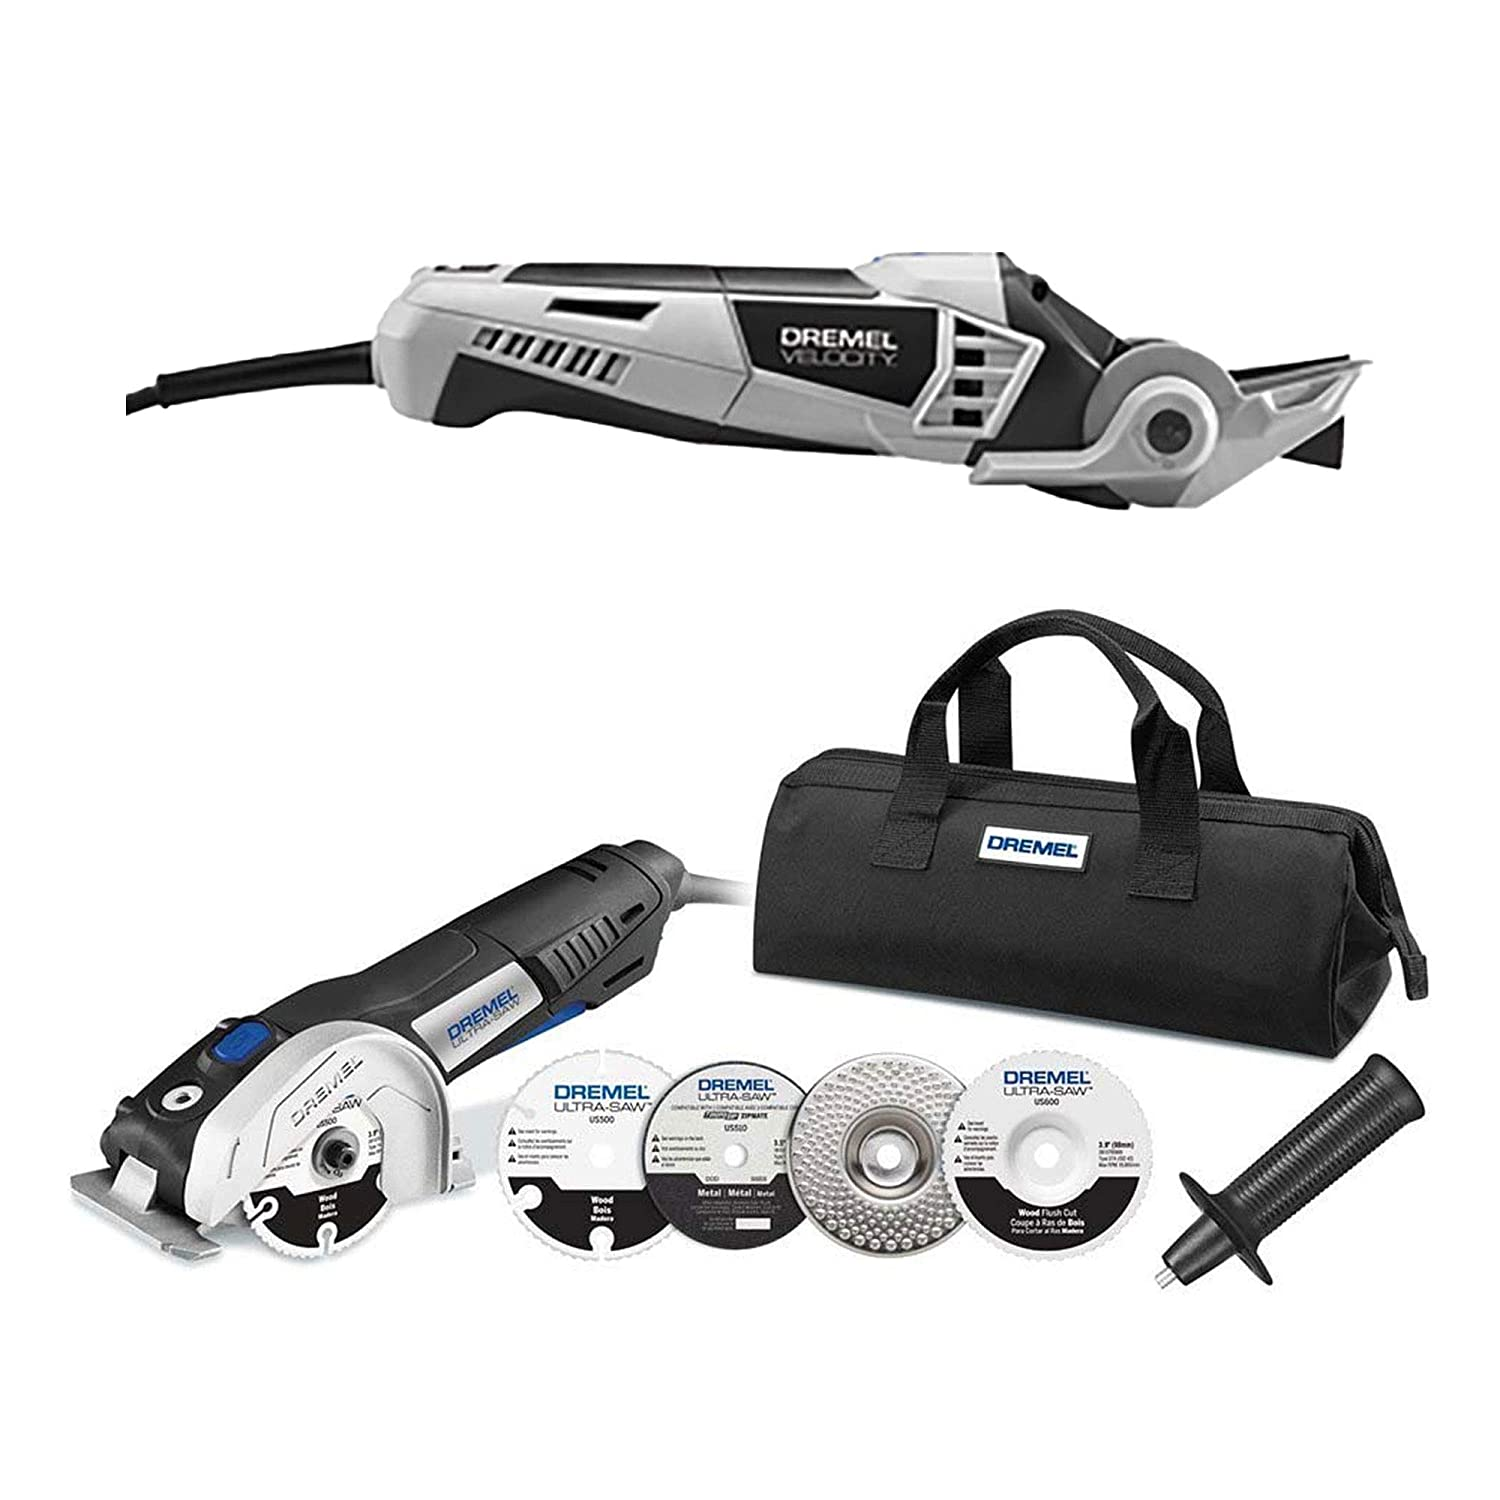 "Dremel Velocity VC60 Multi Oscillating Saw Rotary Tool (Certified Refurbished) Dremel US40 7.5 Amp 4"" Ultra-Saw Corded Circular Saw Kit (Certified Refurbished)"